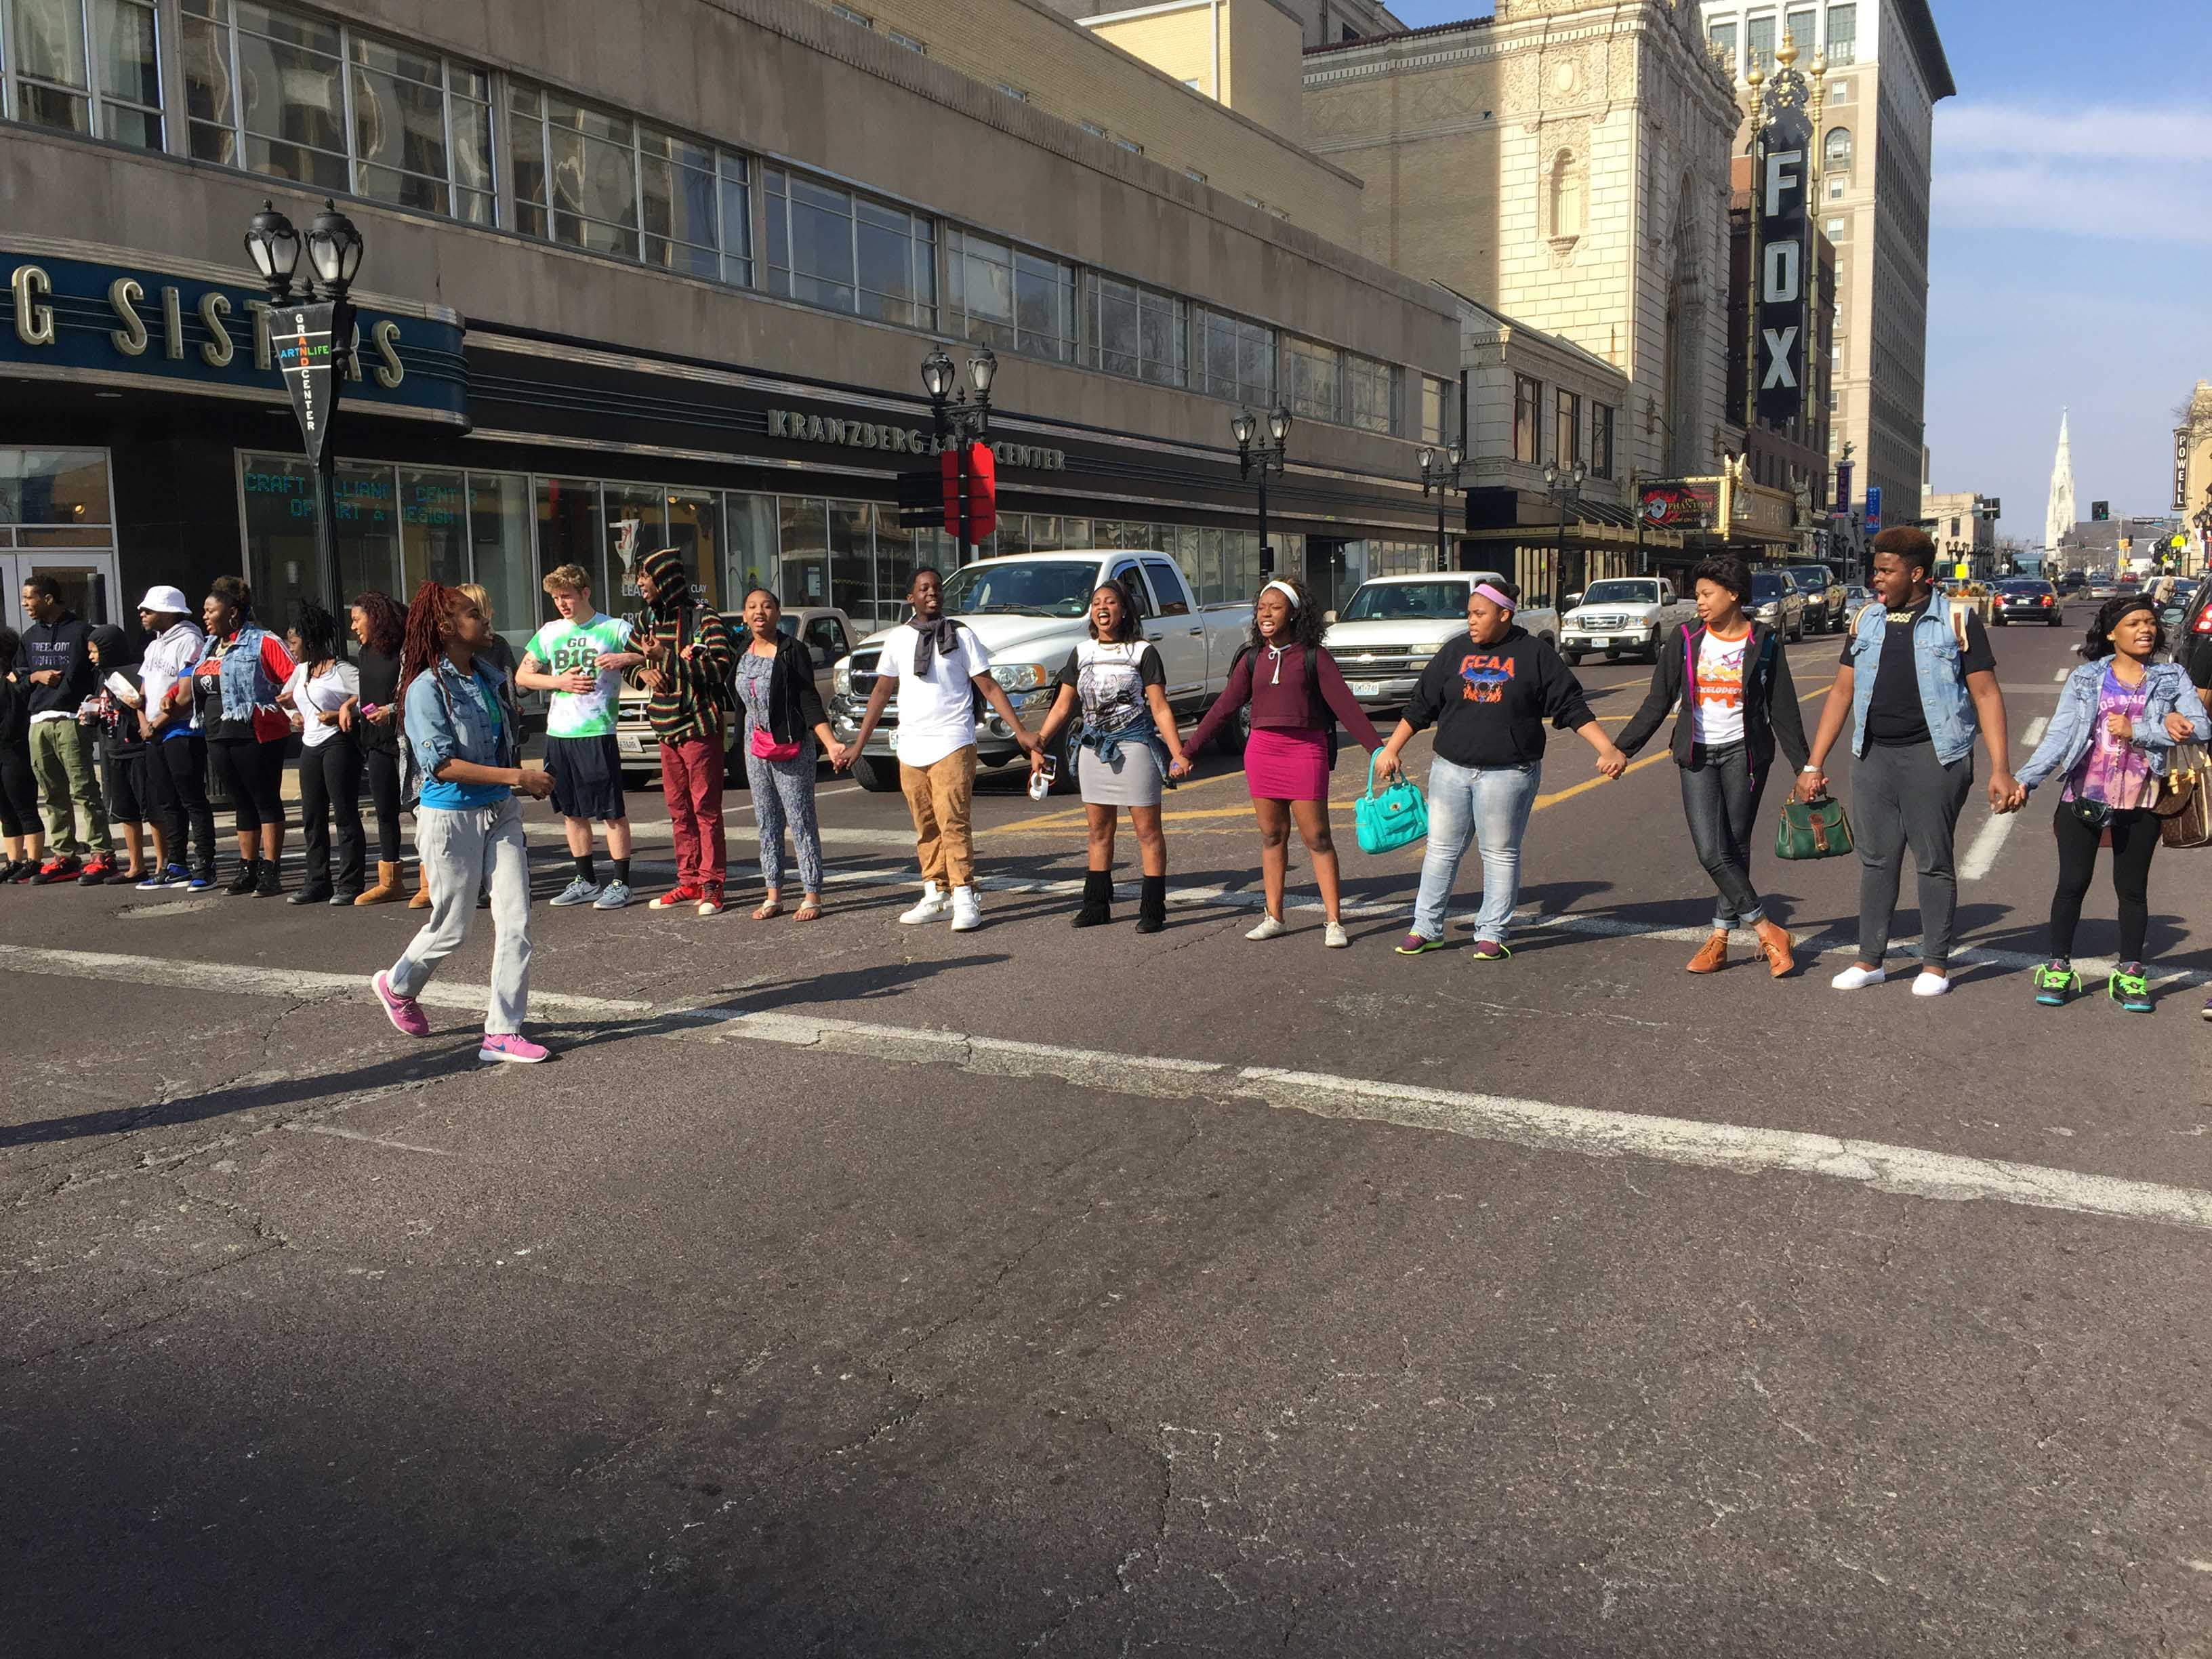 Students protest while blocking Grand on March 12th after the Department of Justice report came out on the Michael Brown case. The protest was to maintain awareness of the Ferguson crisis.